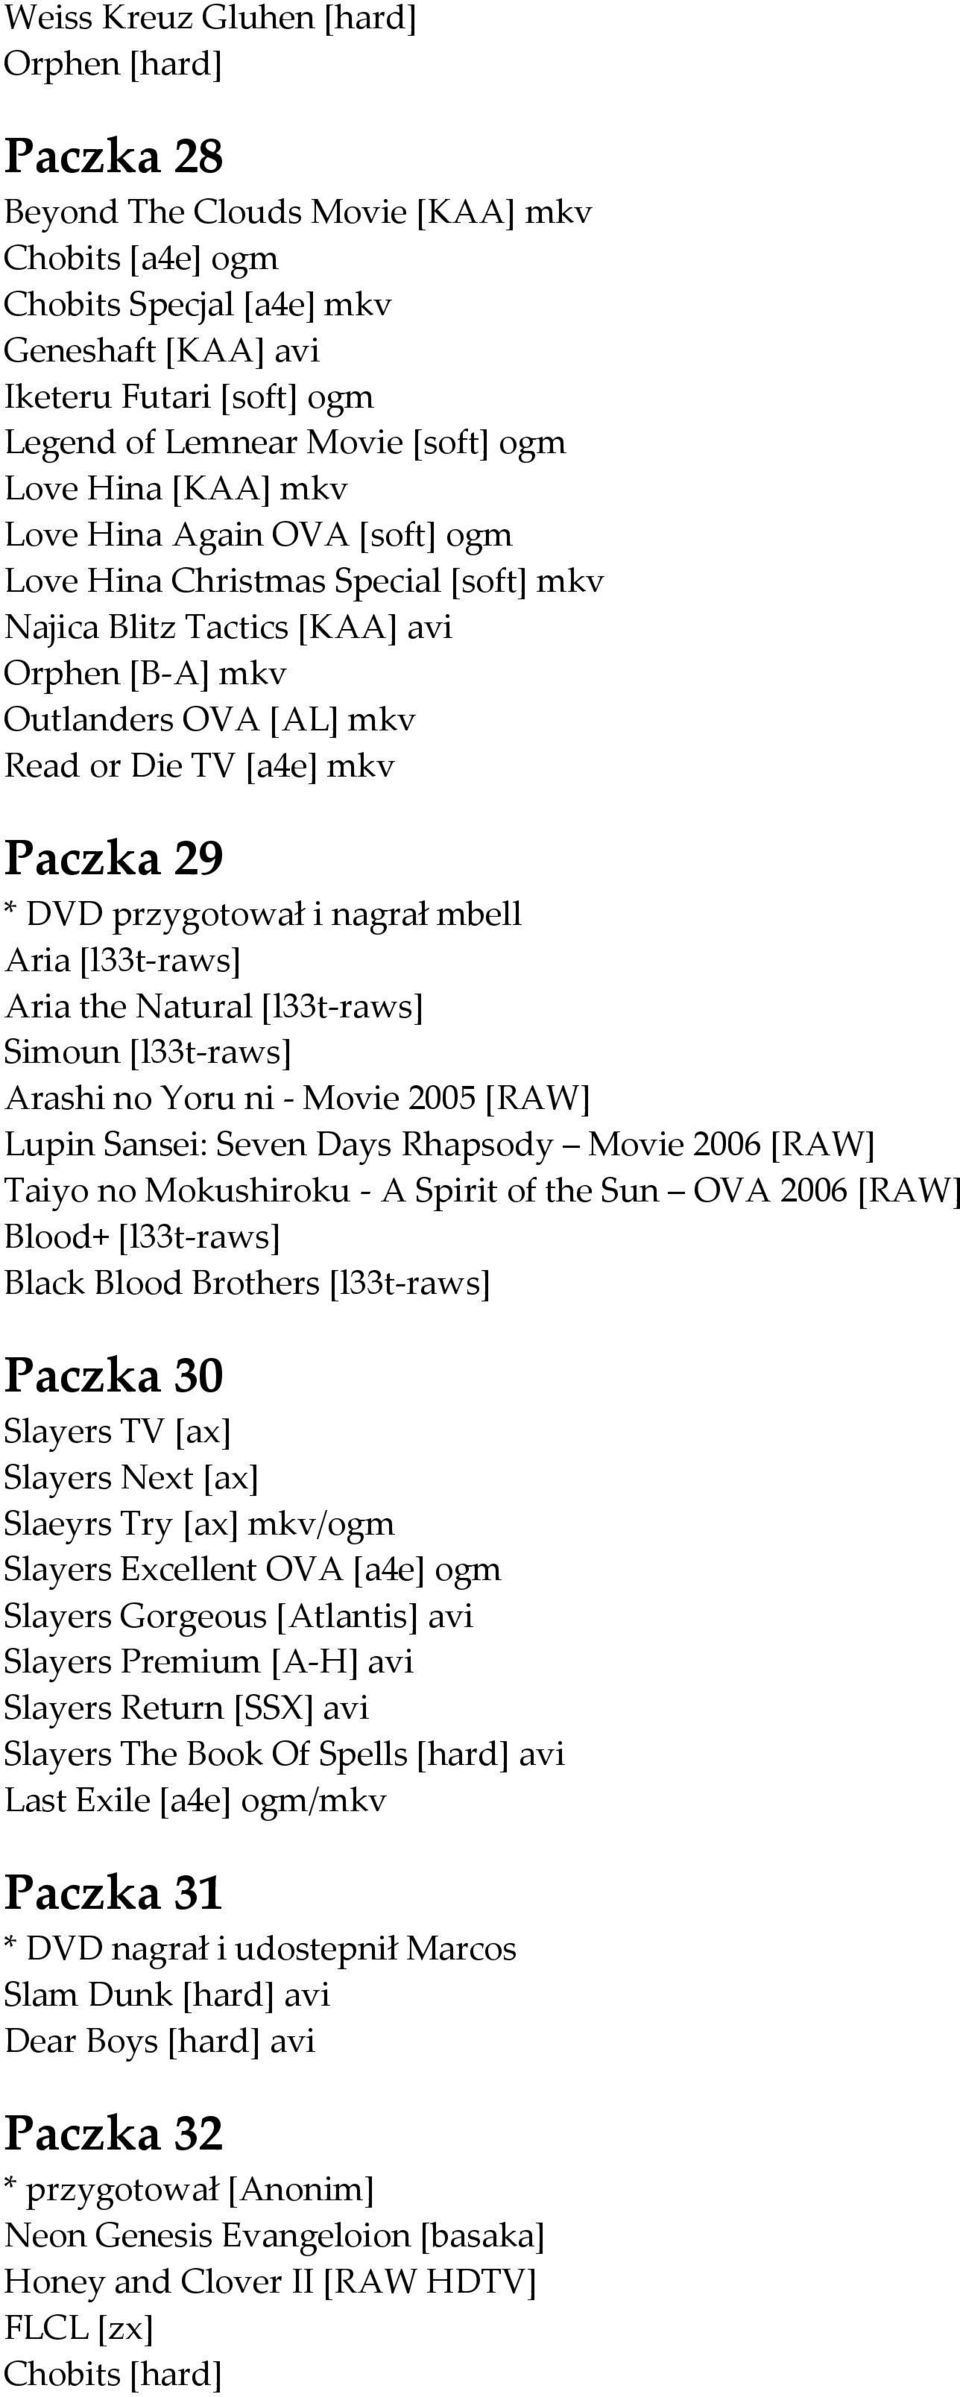 Paczka 29 * DVD przygotował i nagrał mbell Aria [l33t-raws] Aria the Natural [l33t-raws] Simoun [l33t-raws] Arashi no Yoru ni - Movie 2005 [RAW] Lupin Sansei: Seven Days Rhapsody Movie 2006 [RAW]